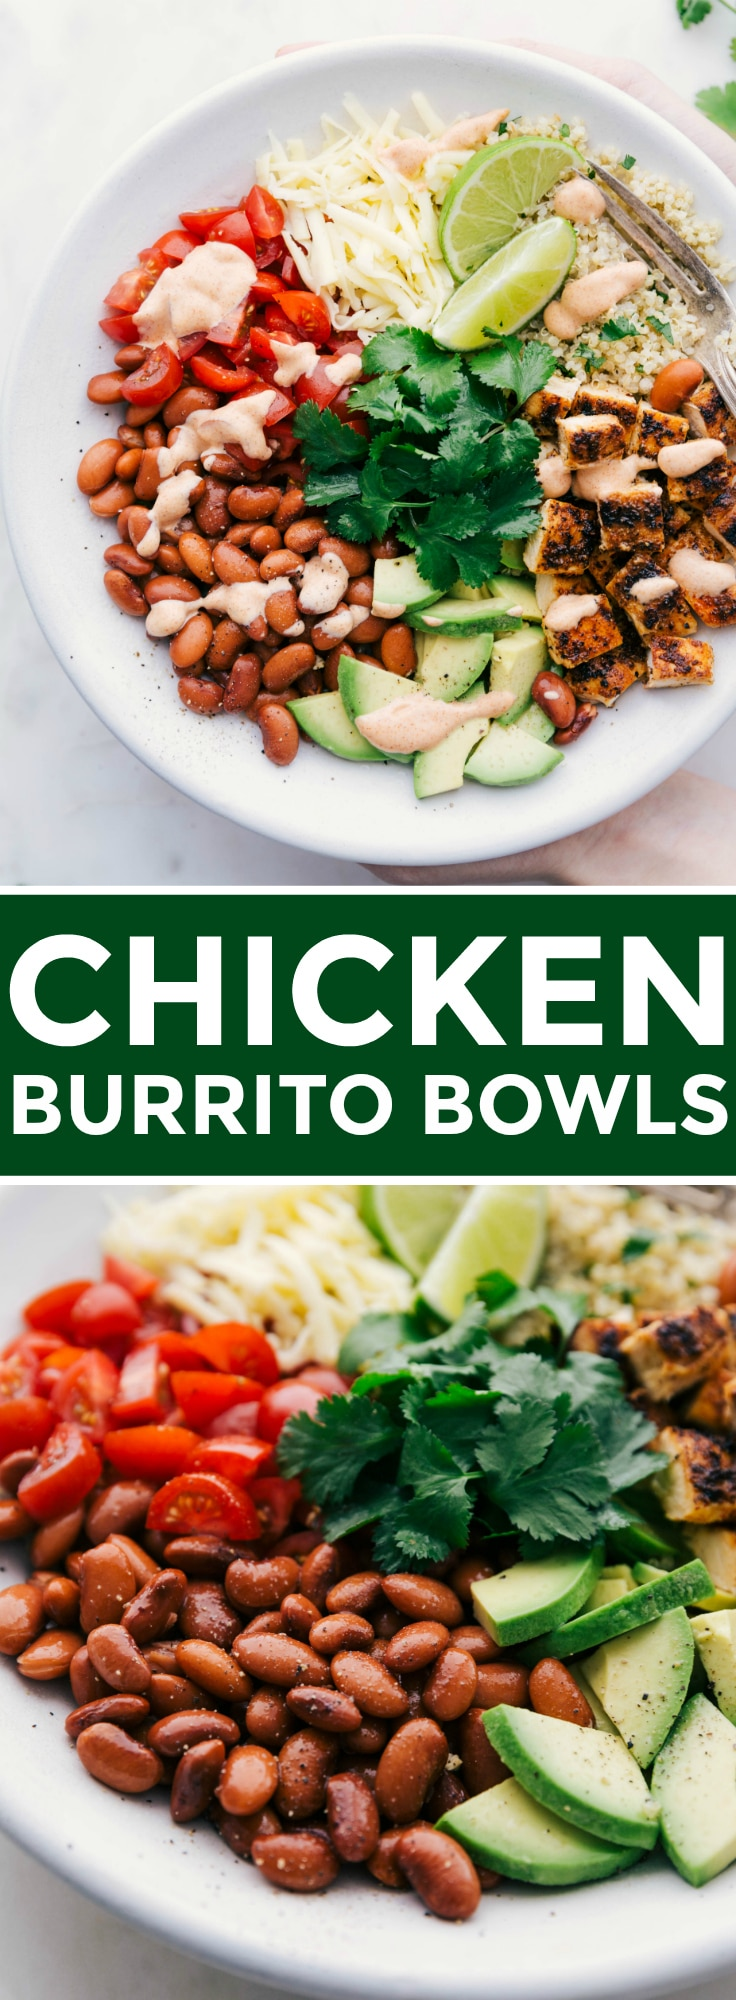 This burrito bowl recipe with spice-rubbed chicken, cilantro-lime quinoa (or rice), beans, vegetables, and an addictive chili lime sauce is a meal you'll want to make over and over again! via chelseasmessyapron.com #burrito #bowl #recipe #chicken #easy #kid #friendly #family #cilantro #lime #rice #healthy